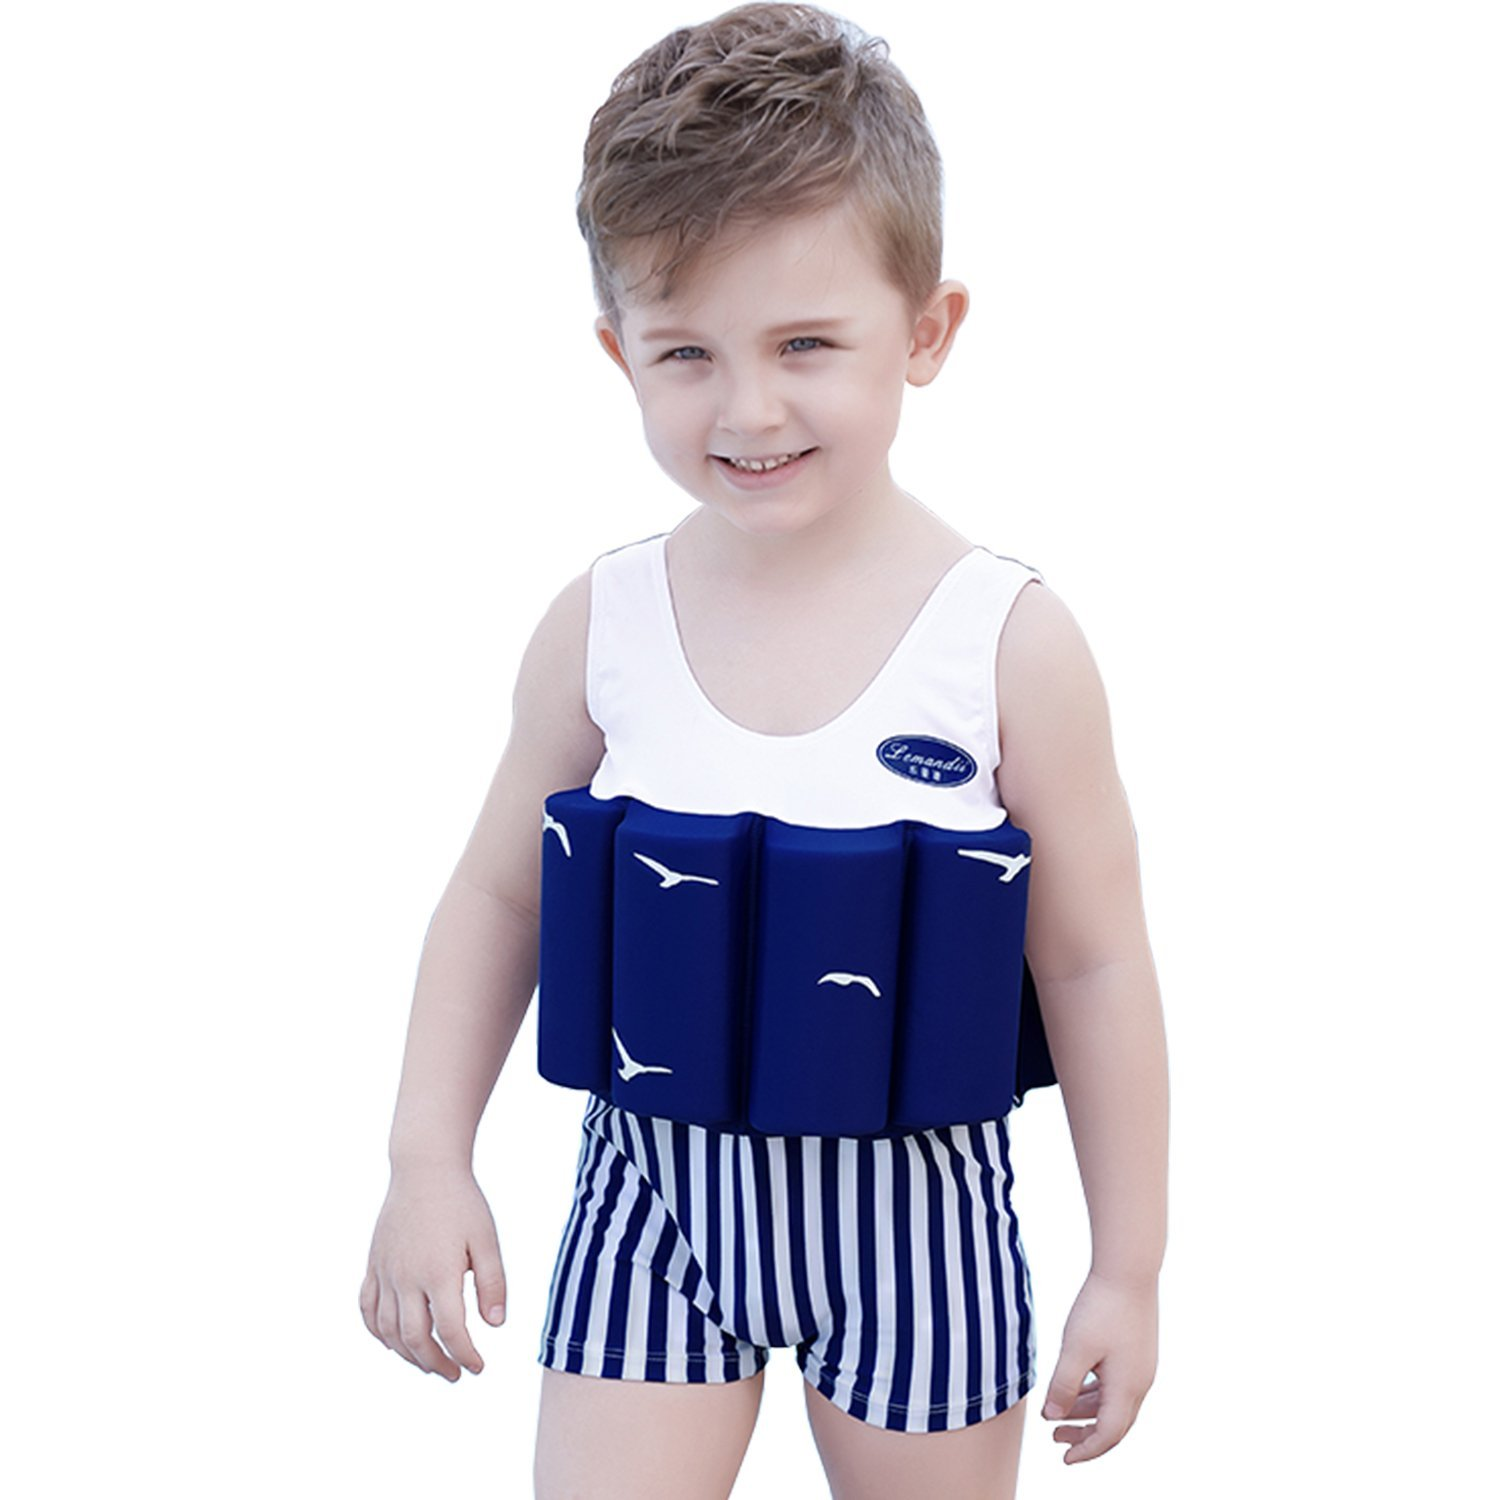 0b0208f0b9 Get Quotations · ONMet Kids Life Jacket Baby Float Suit Detachable Float  Adjustable One-Piece Swimsuit Buoyancy for